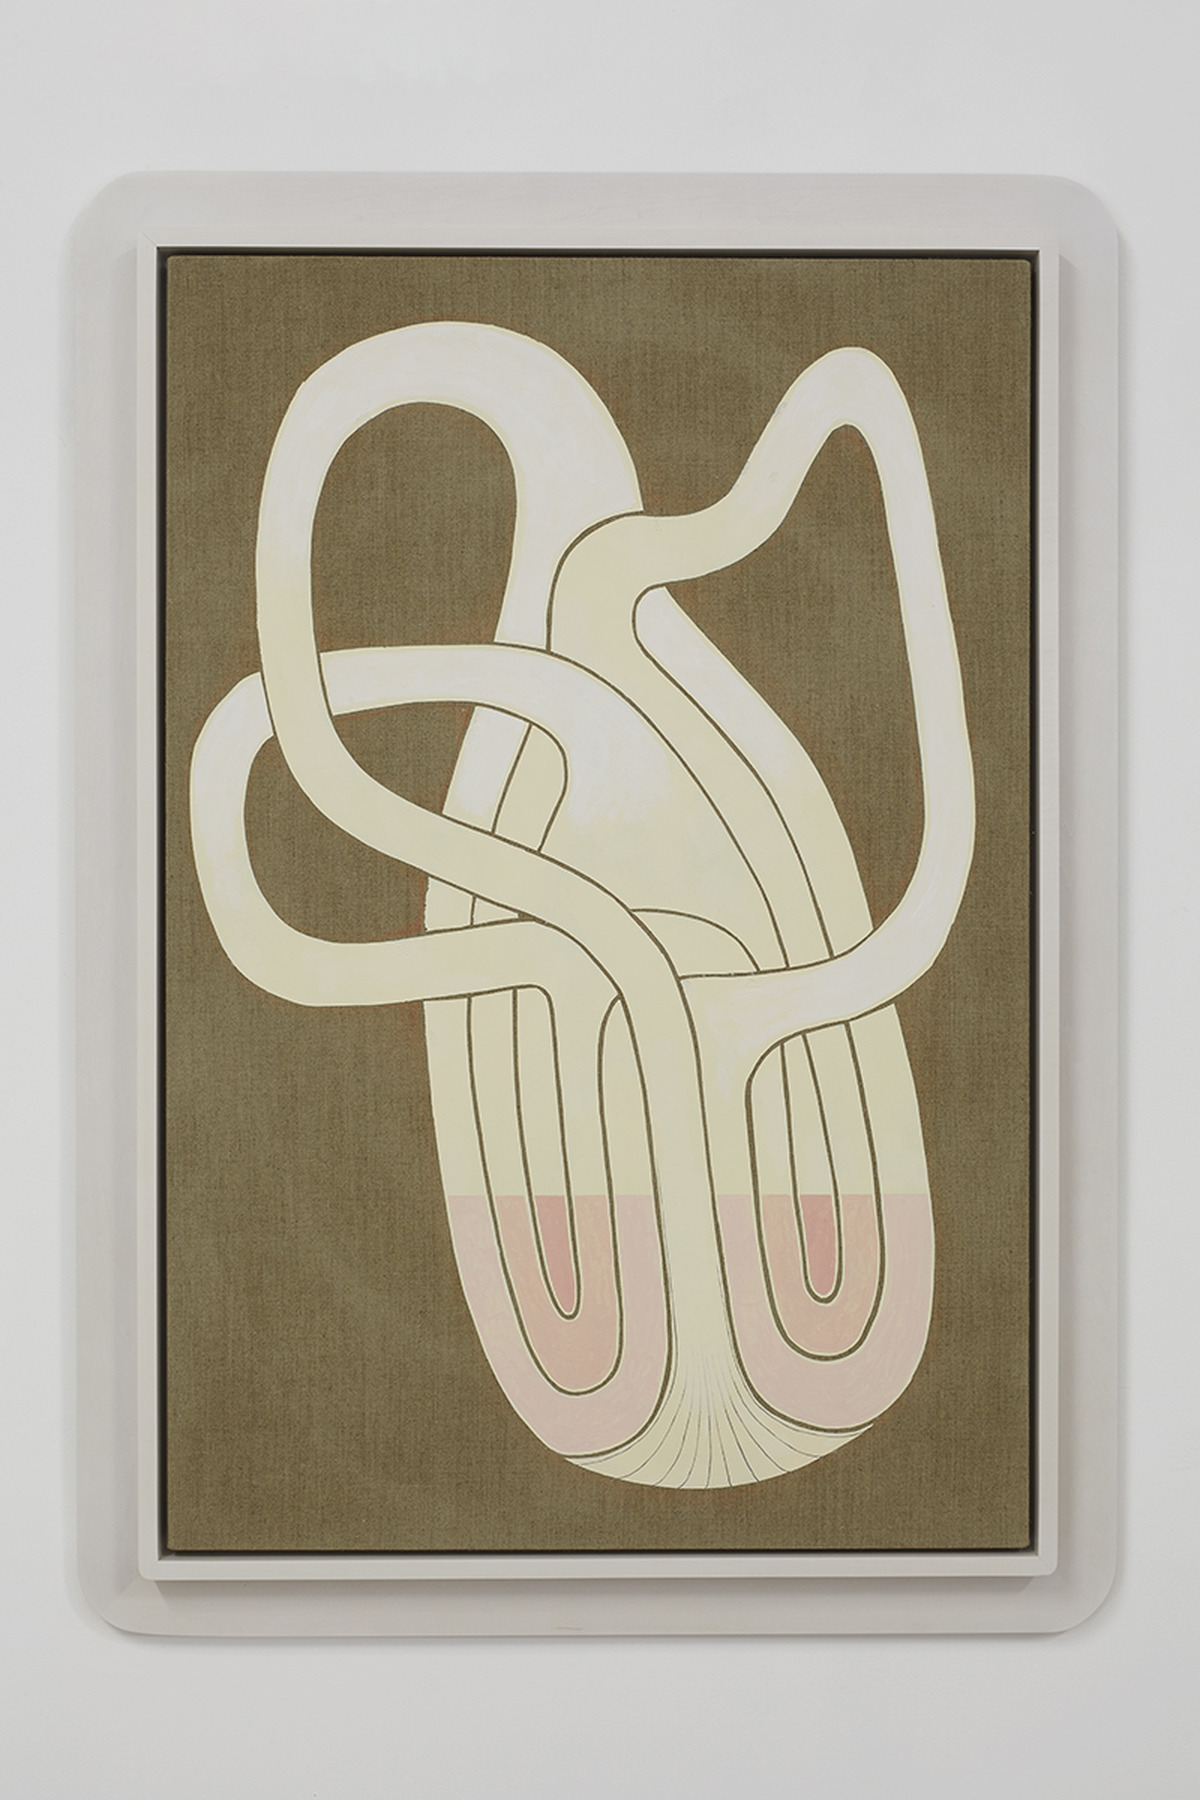 23.Hoeber_Triple Klein Bottle Cross Section, 2015_Flashe, colored pencil and acrylic on linen with artist's frame_48.5x34.5in